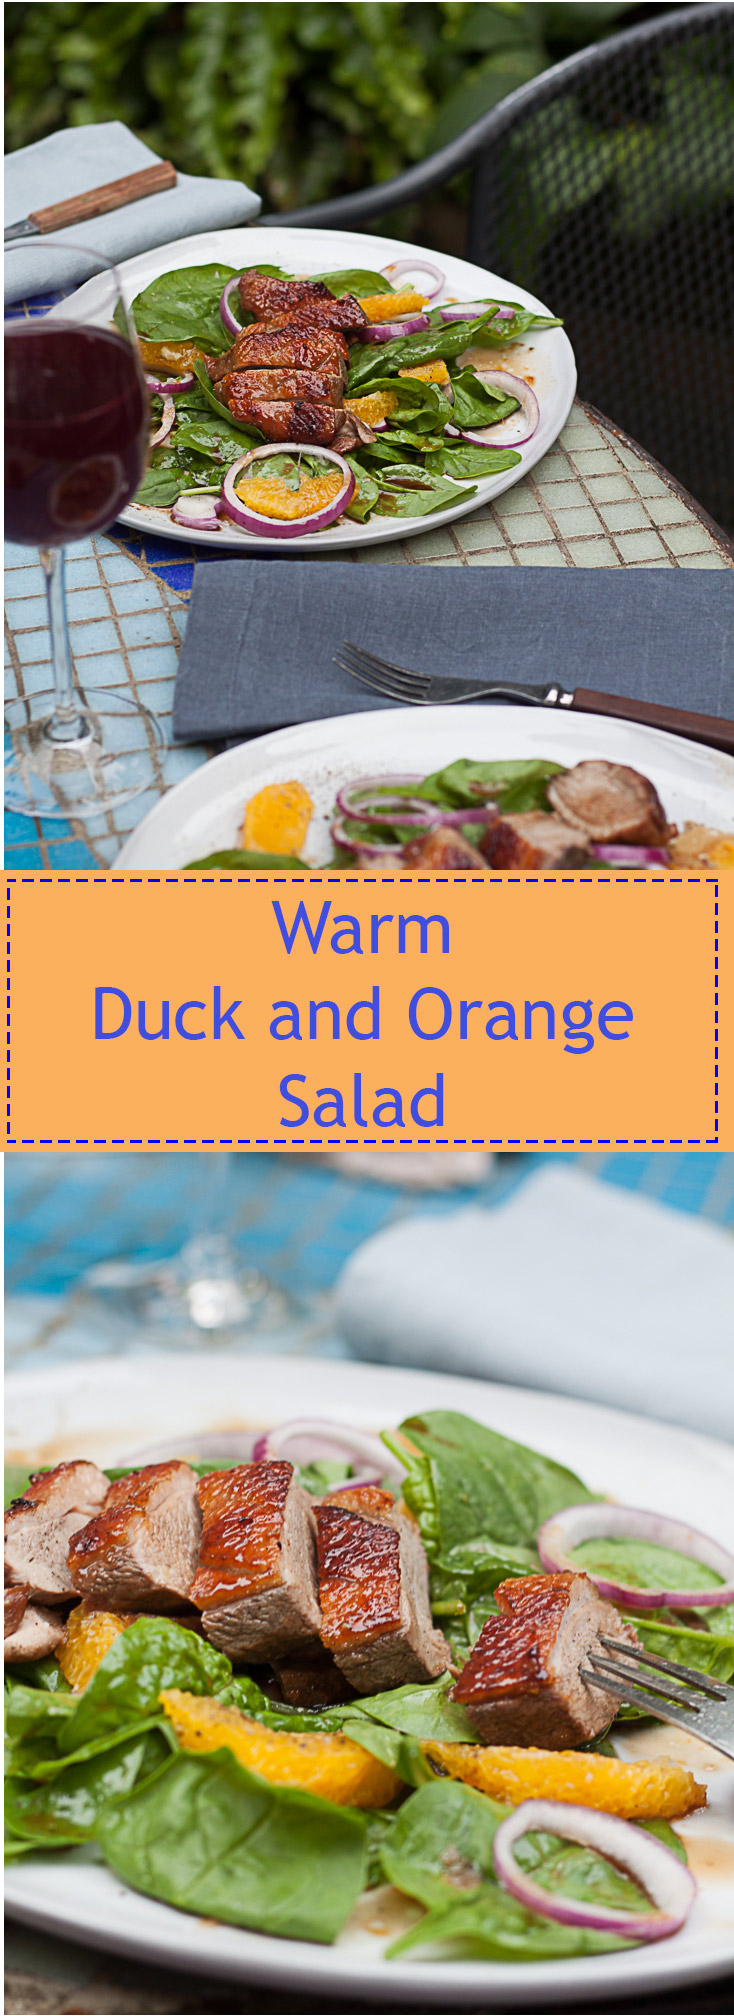 Warm duck and orange salad.